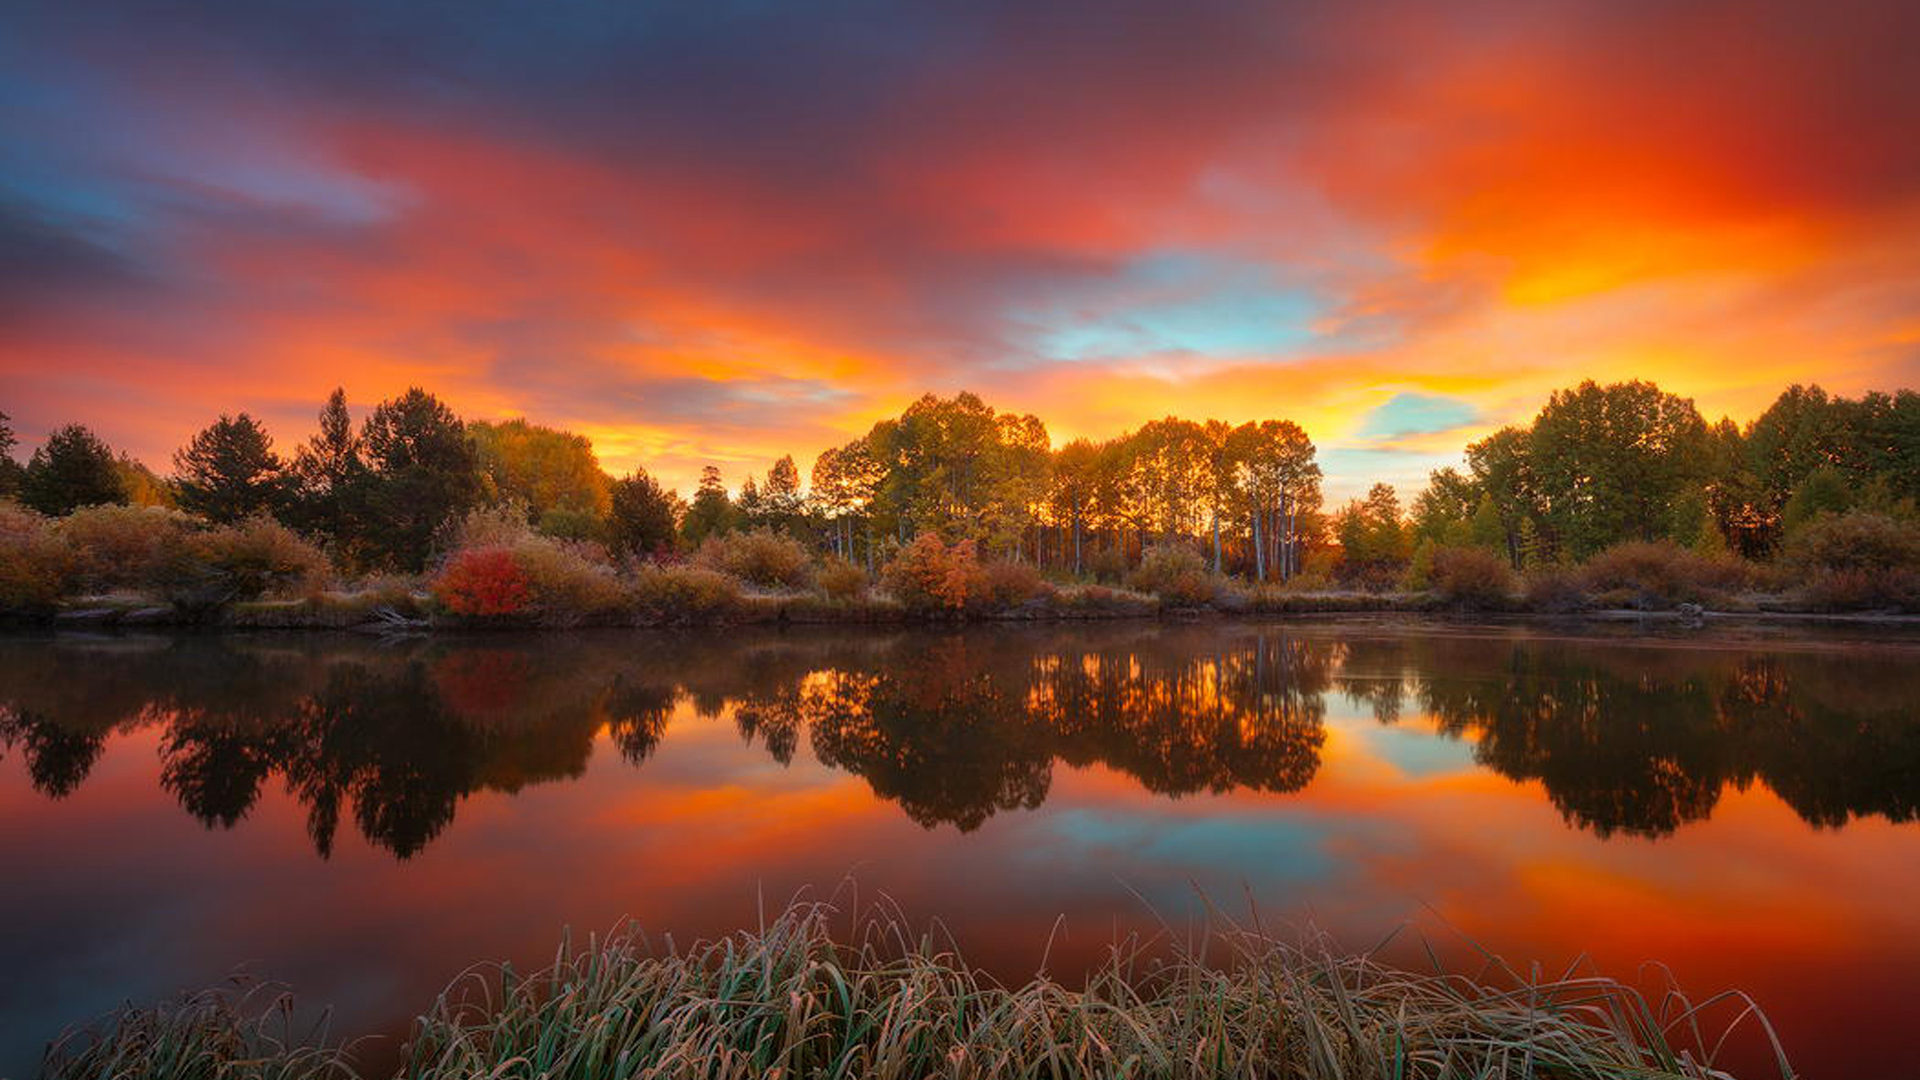 Android Wallpapers Fall Autumn Sky Sunrise On The Deschutes River The Main